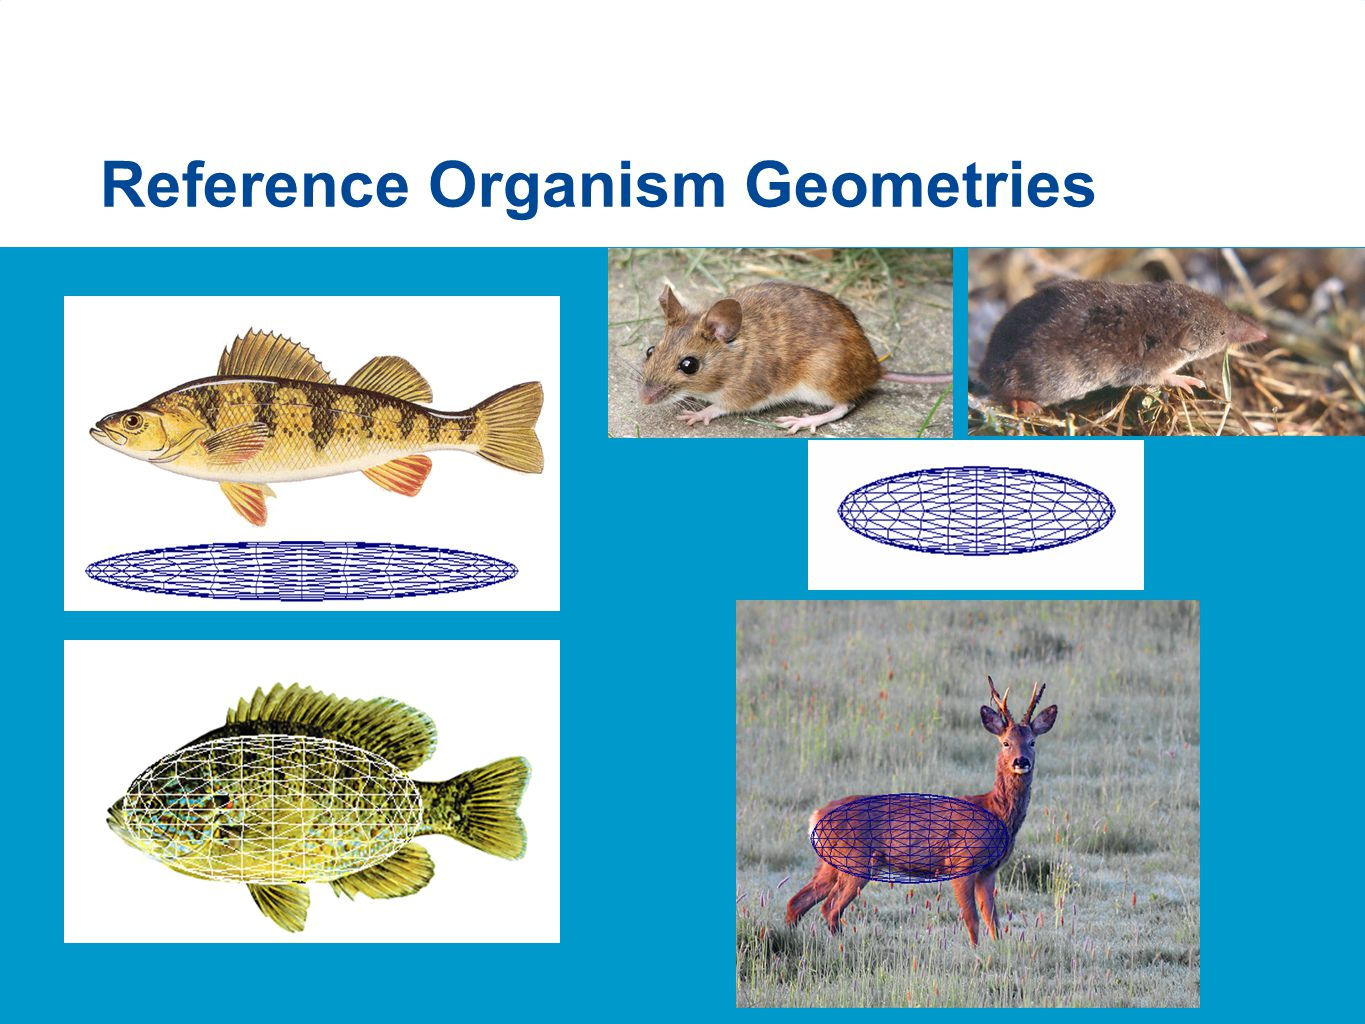 Reference Organism Geometries